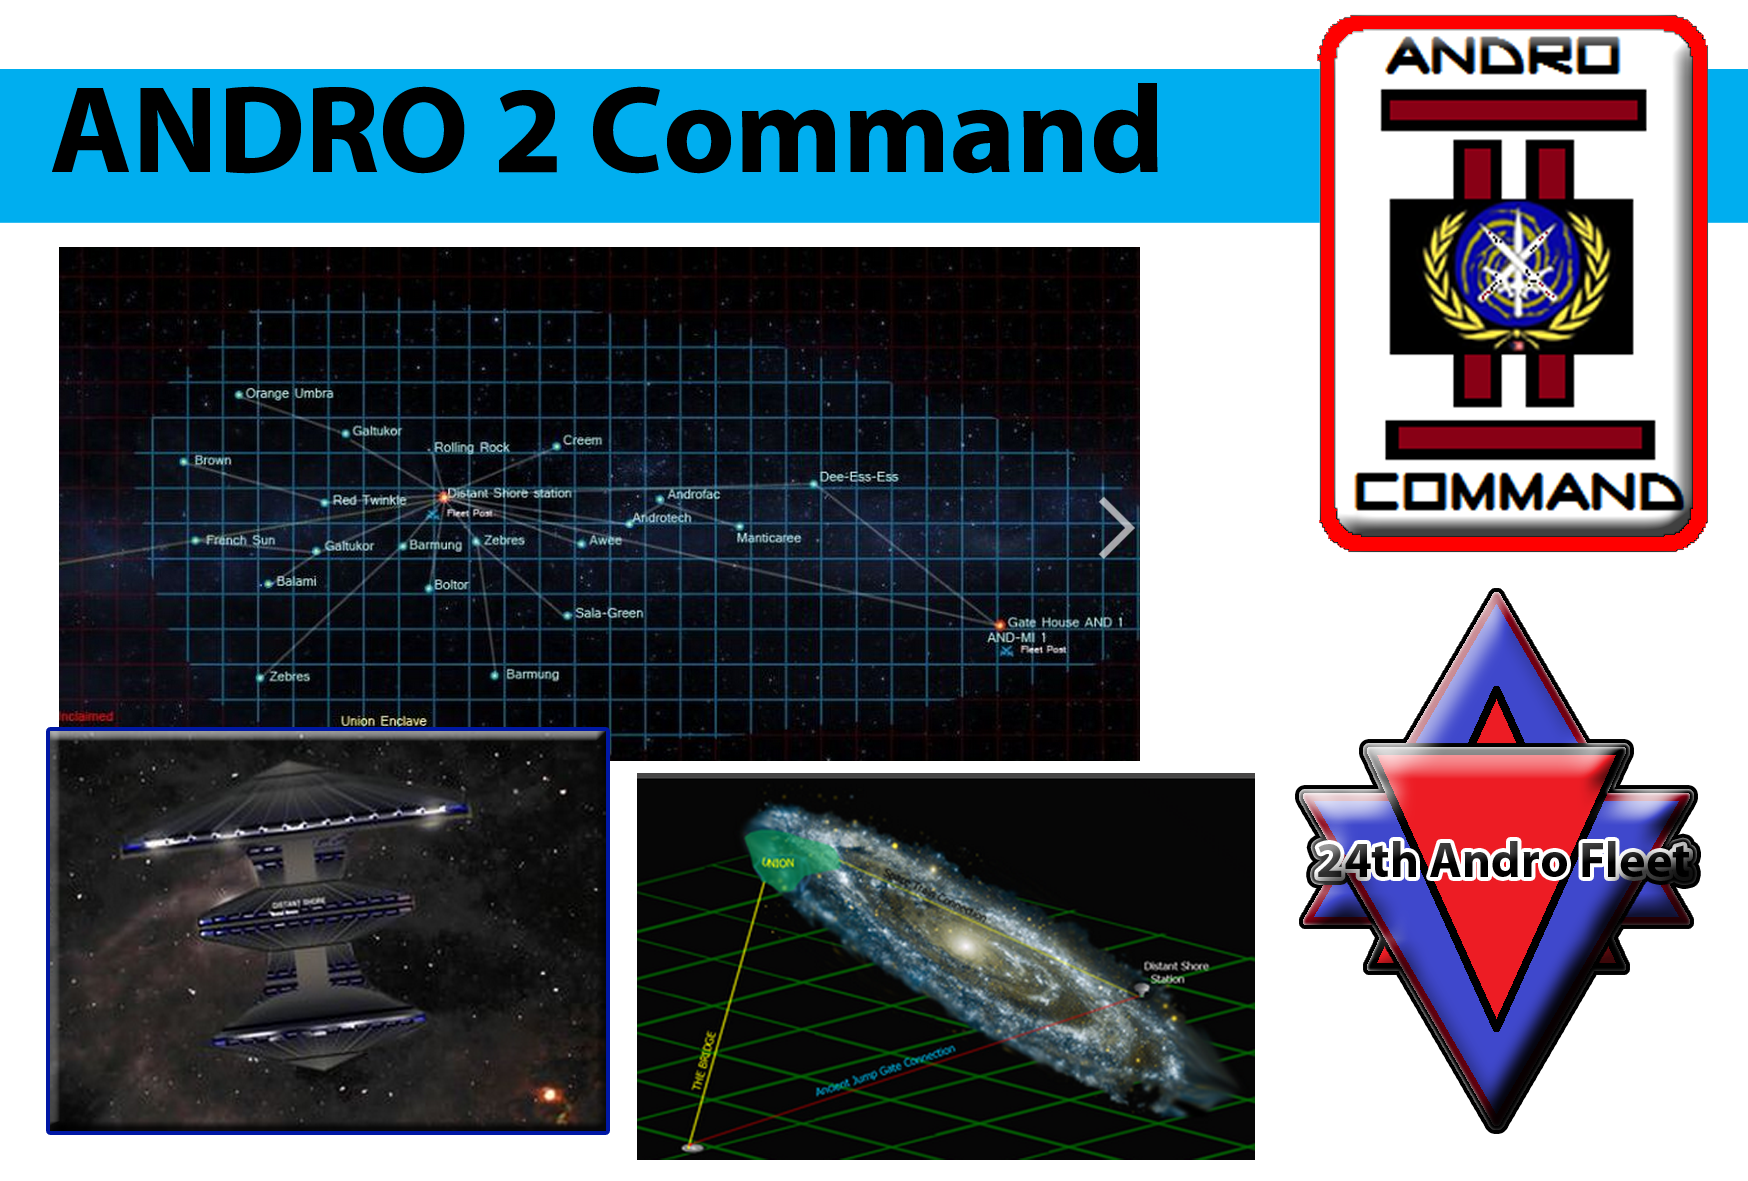 ANDRO 2 Command